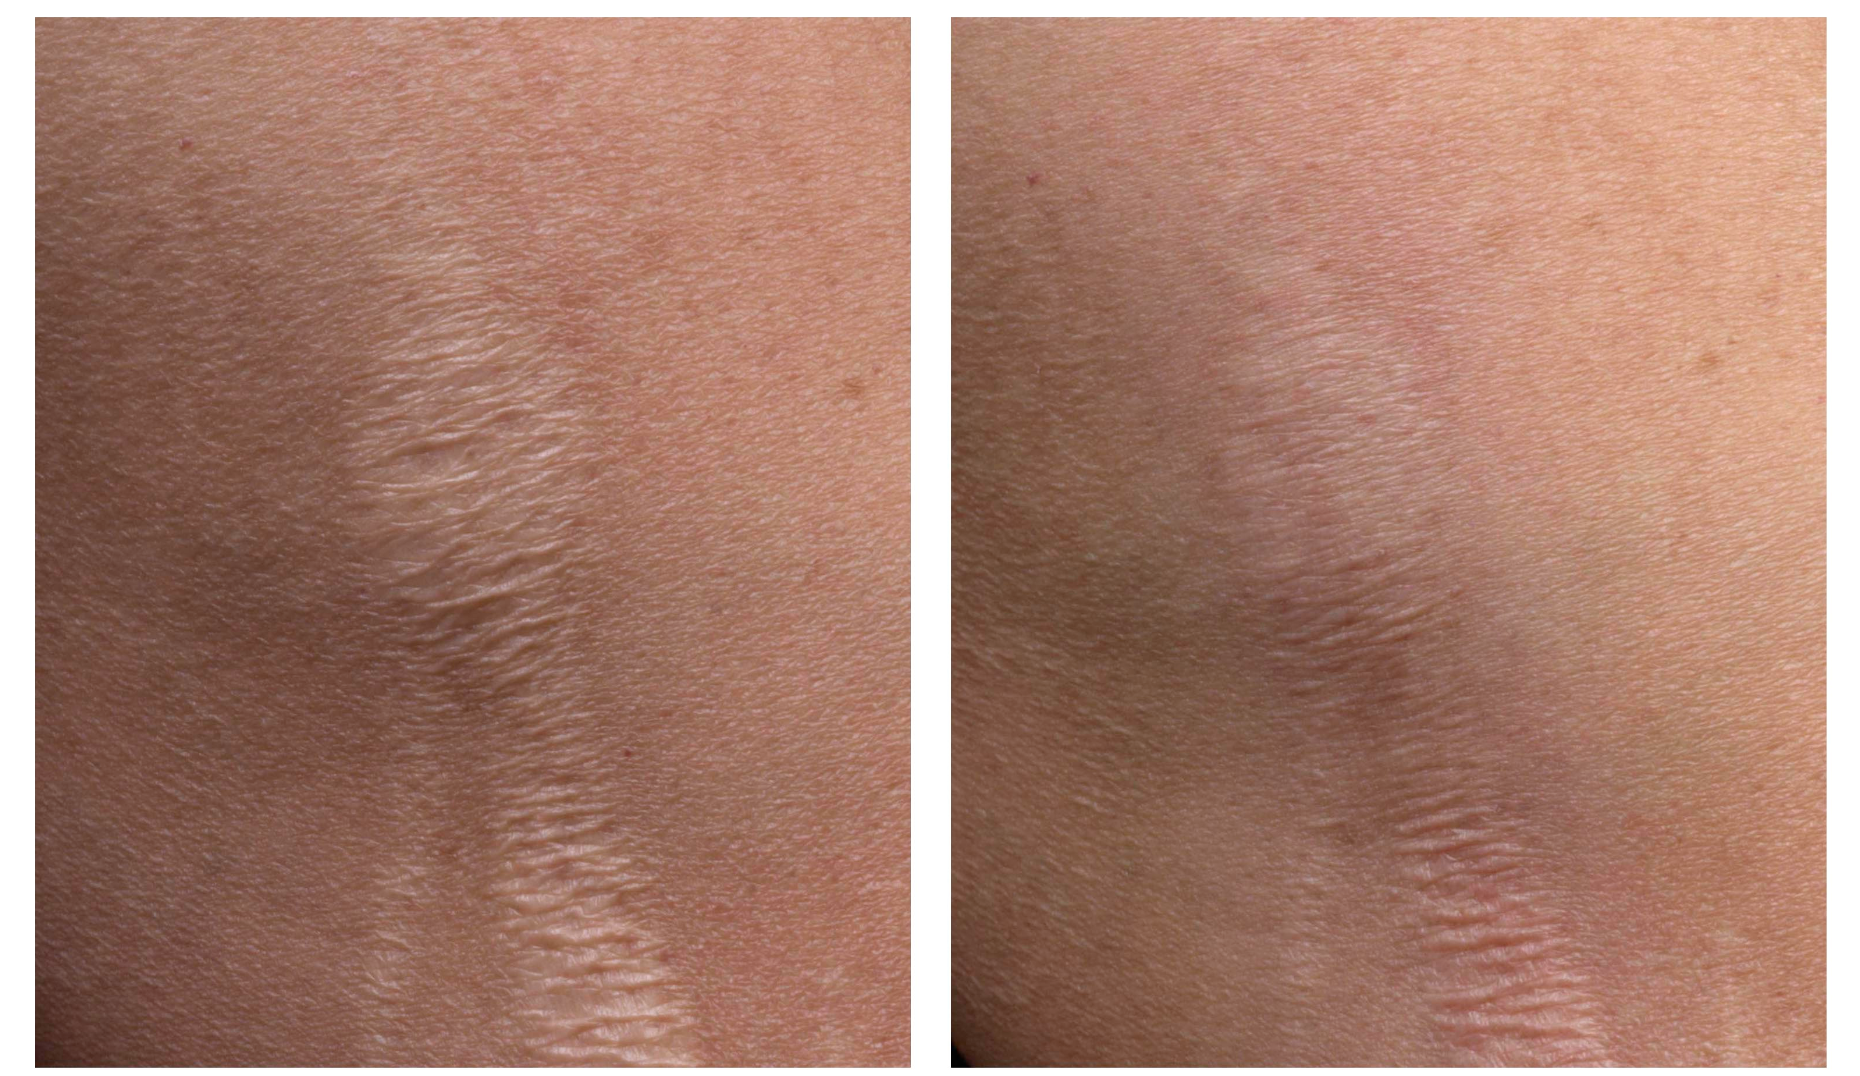 laser stretch marks honolulu